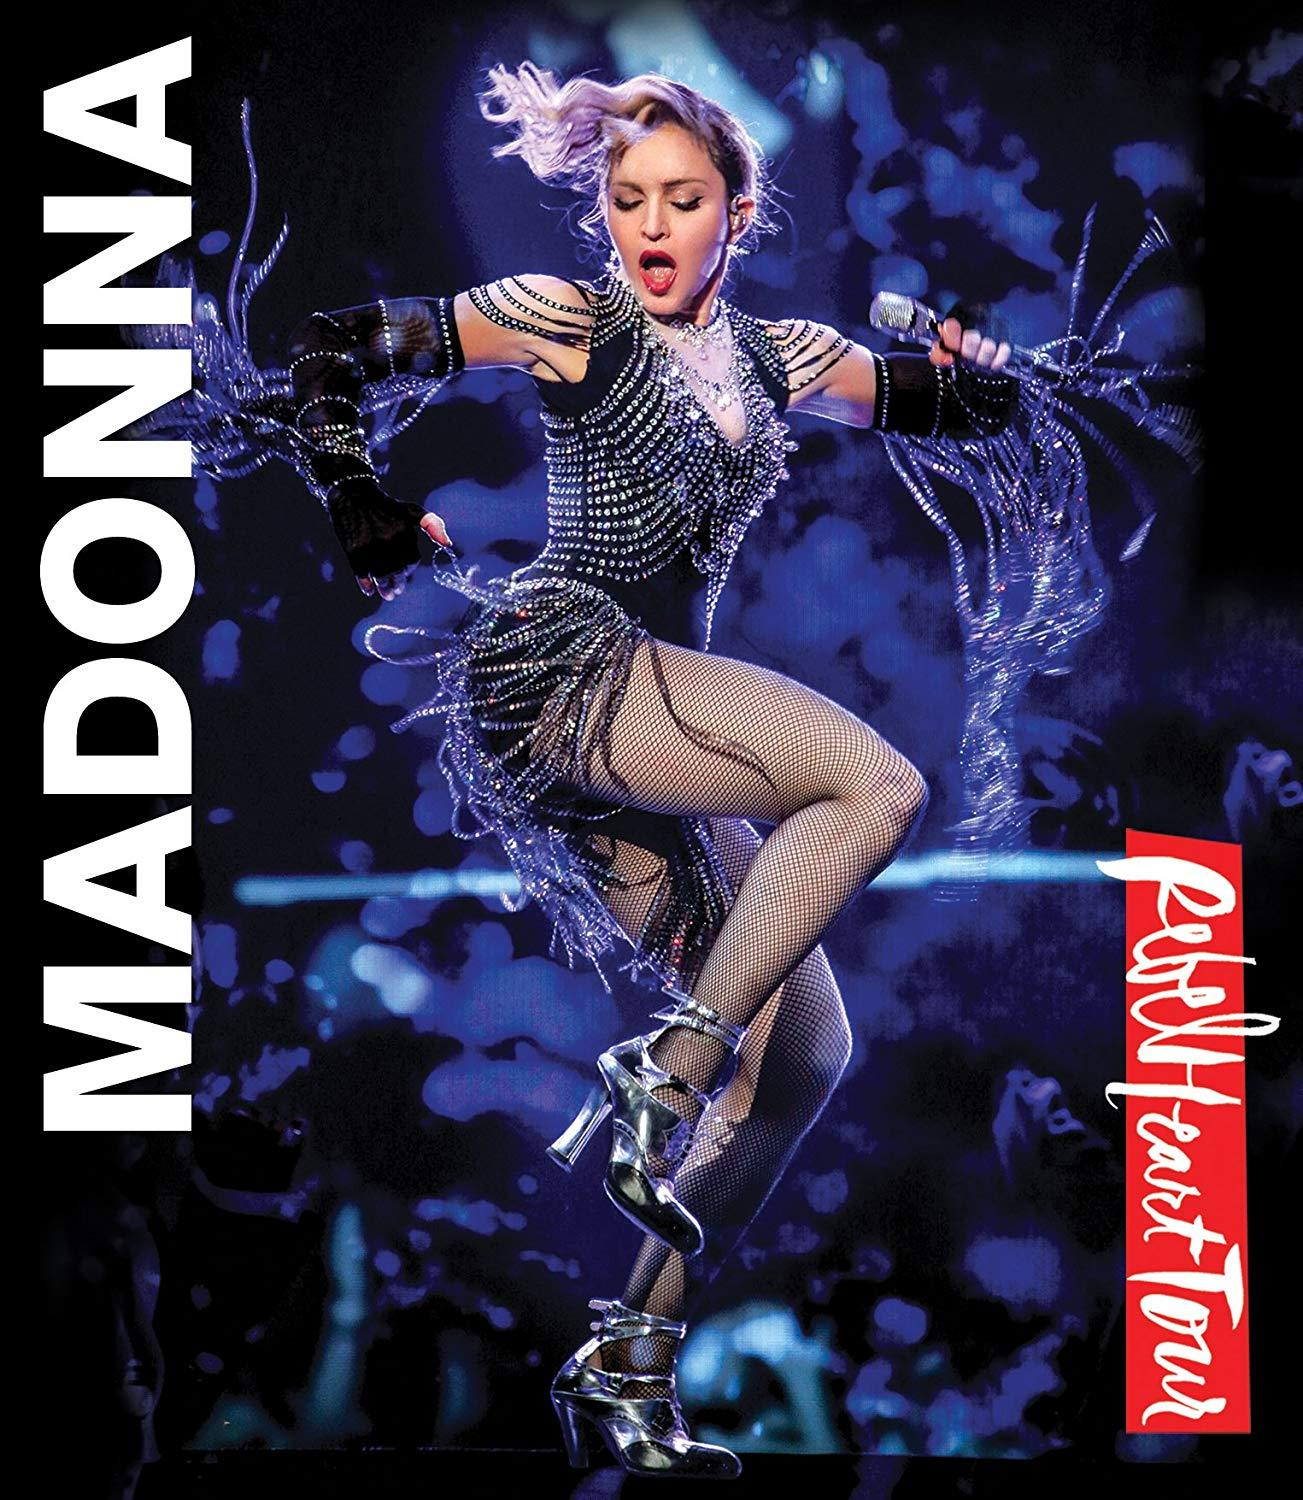 Primary image for Madonna Rebel Heart Tour [Japan Bonus Track] Blu-ray